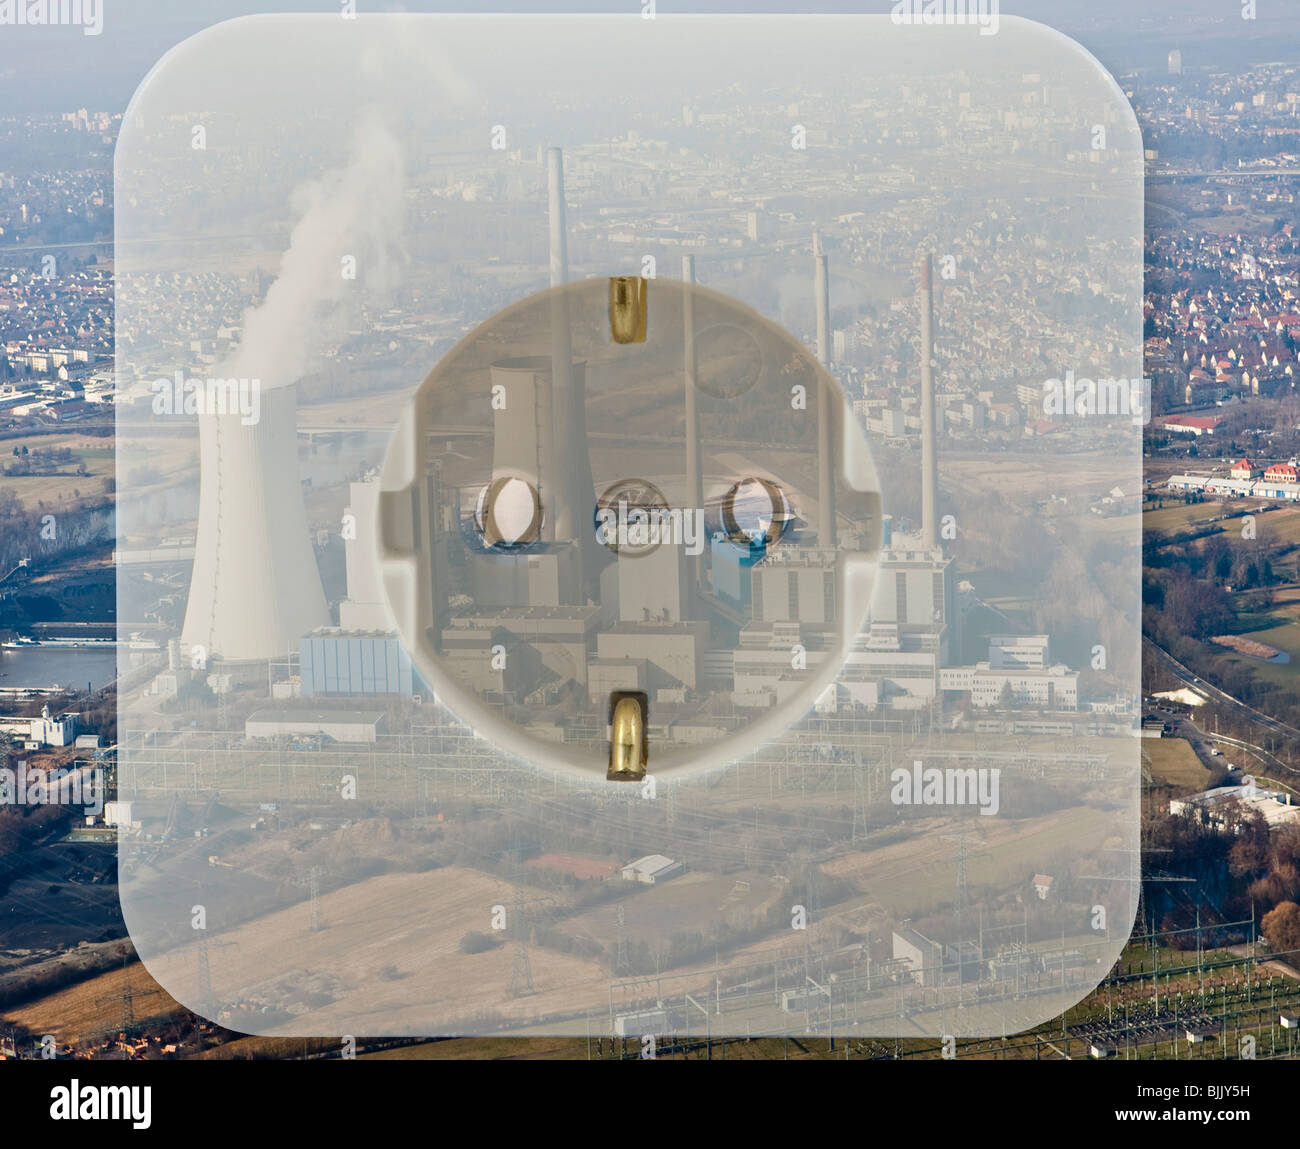 Symbolic image for electricity from nuclear power plants - Stock Image